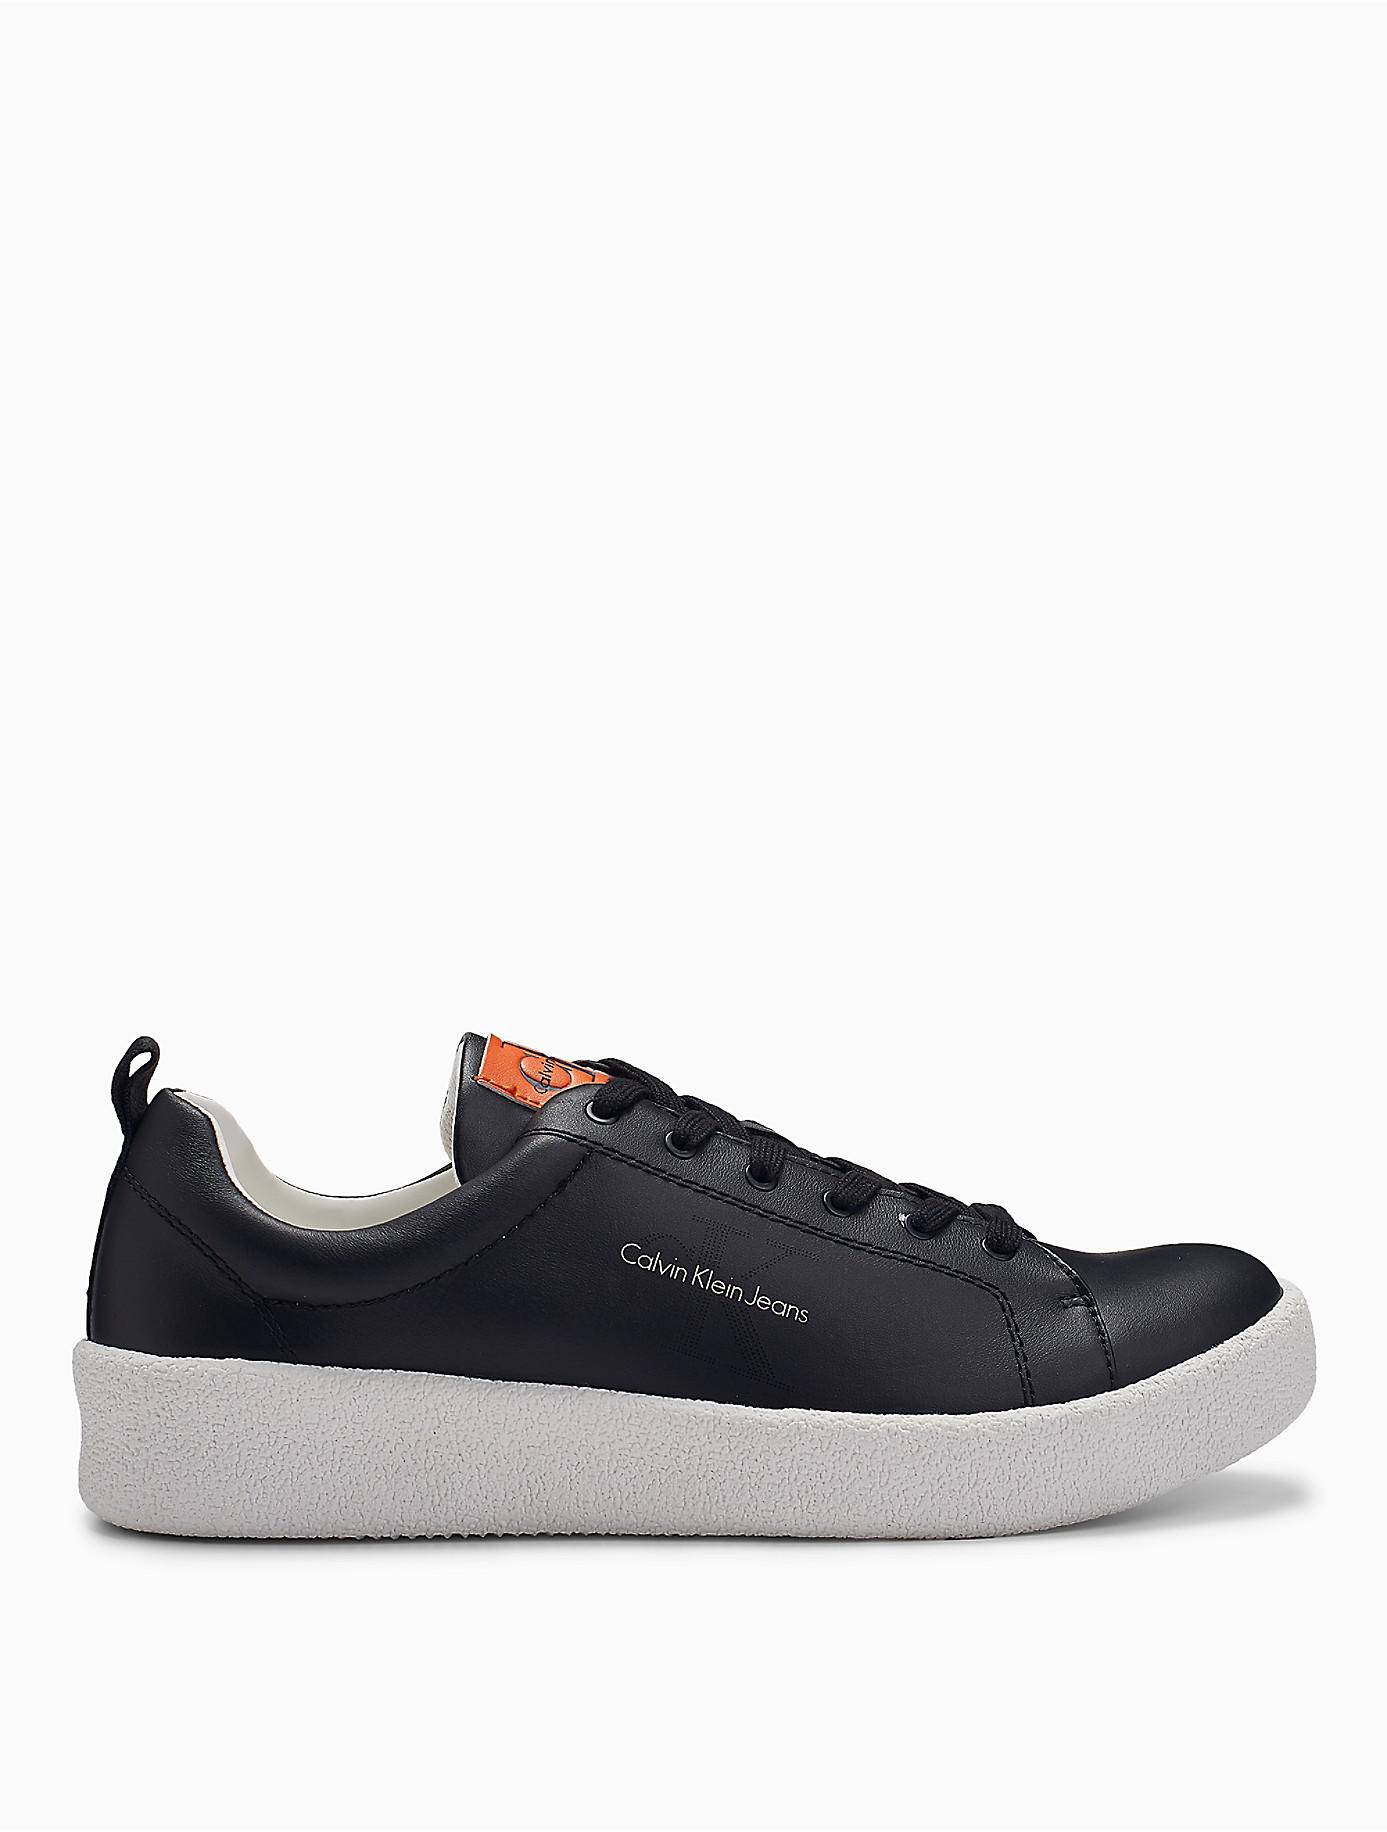 Mens Gerald Nappa Low-Top Sneakers Calvin Klein Jeans